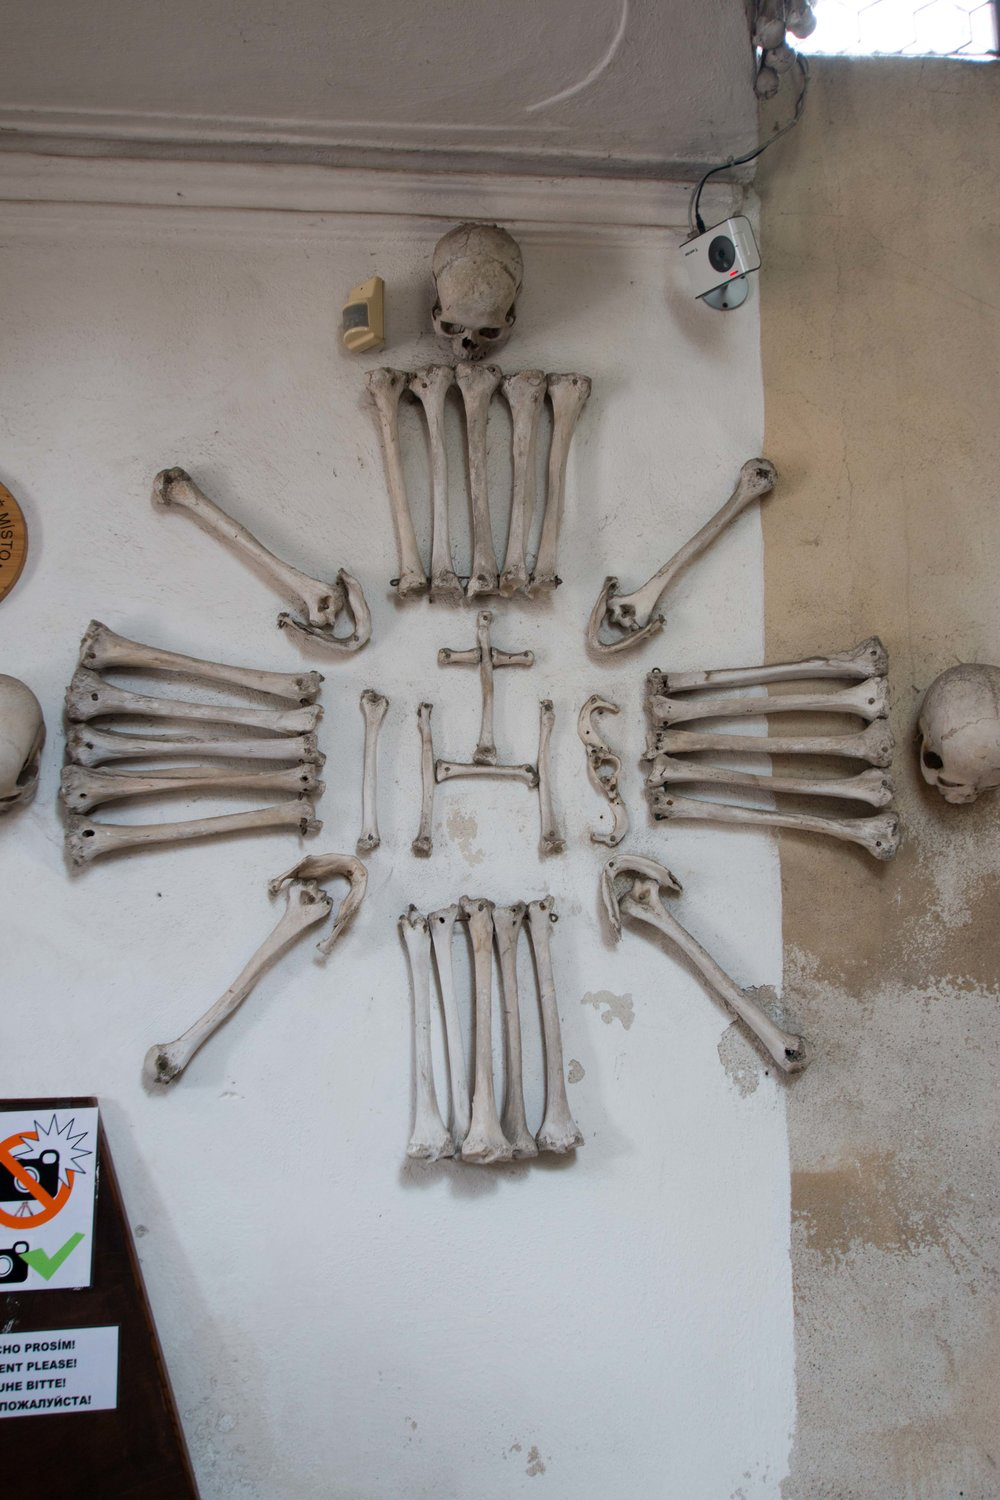 Human bones adorn even the walls while a security camera keeps an eye on visitors